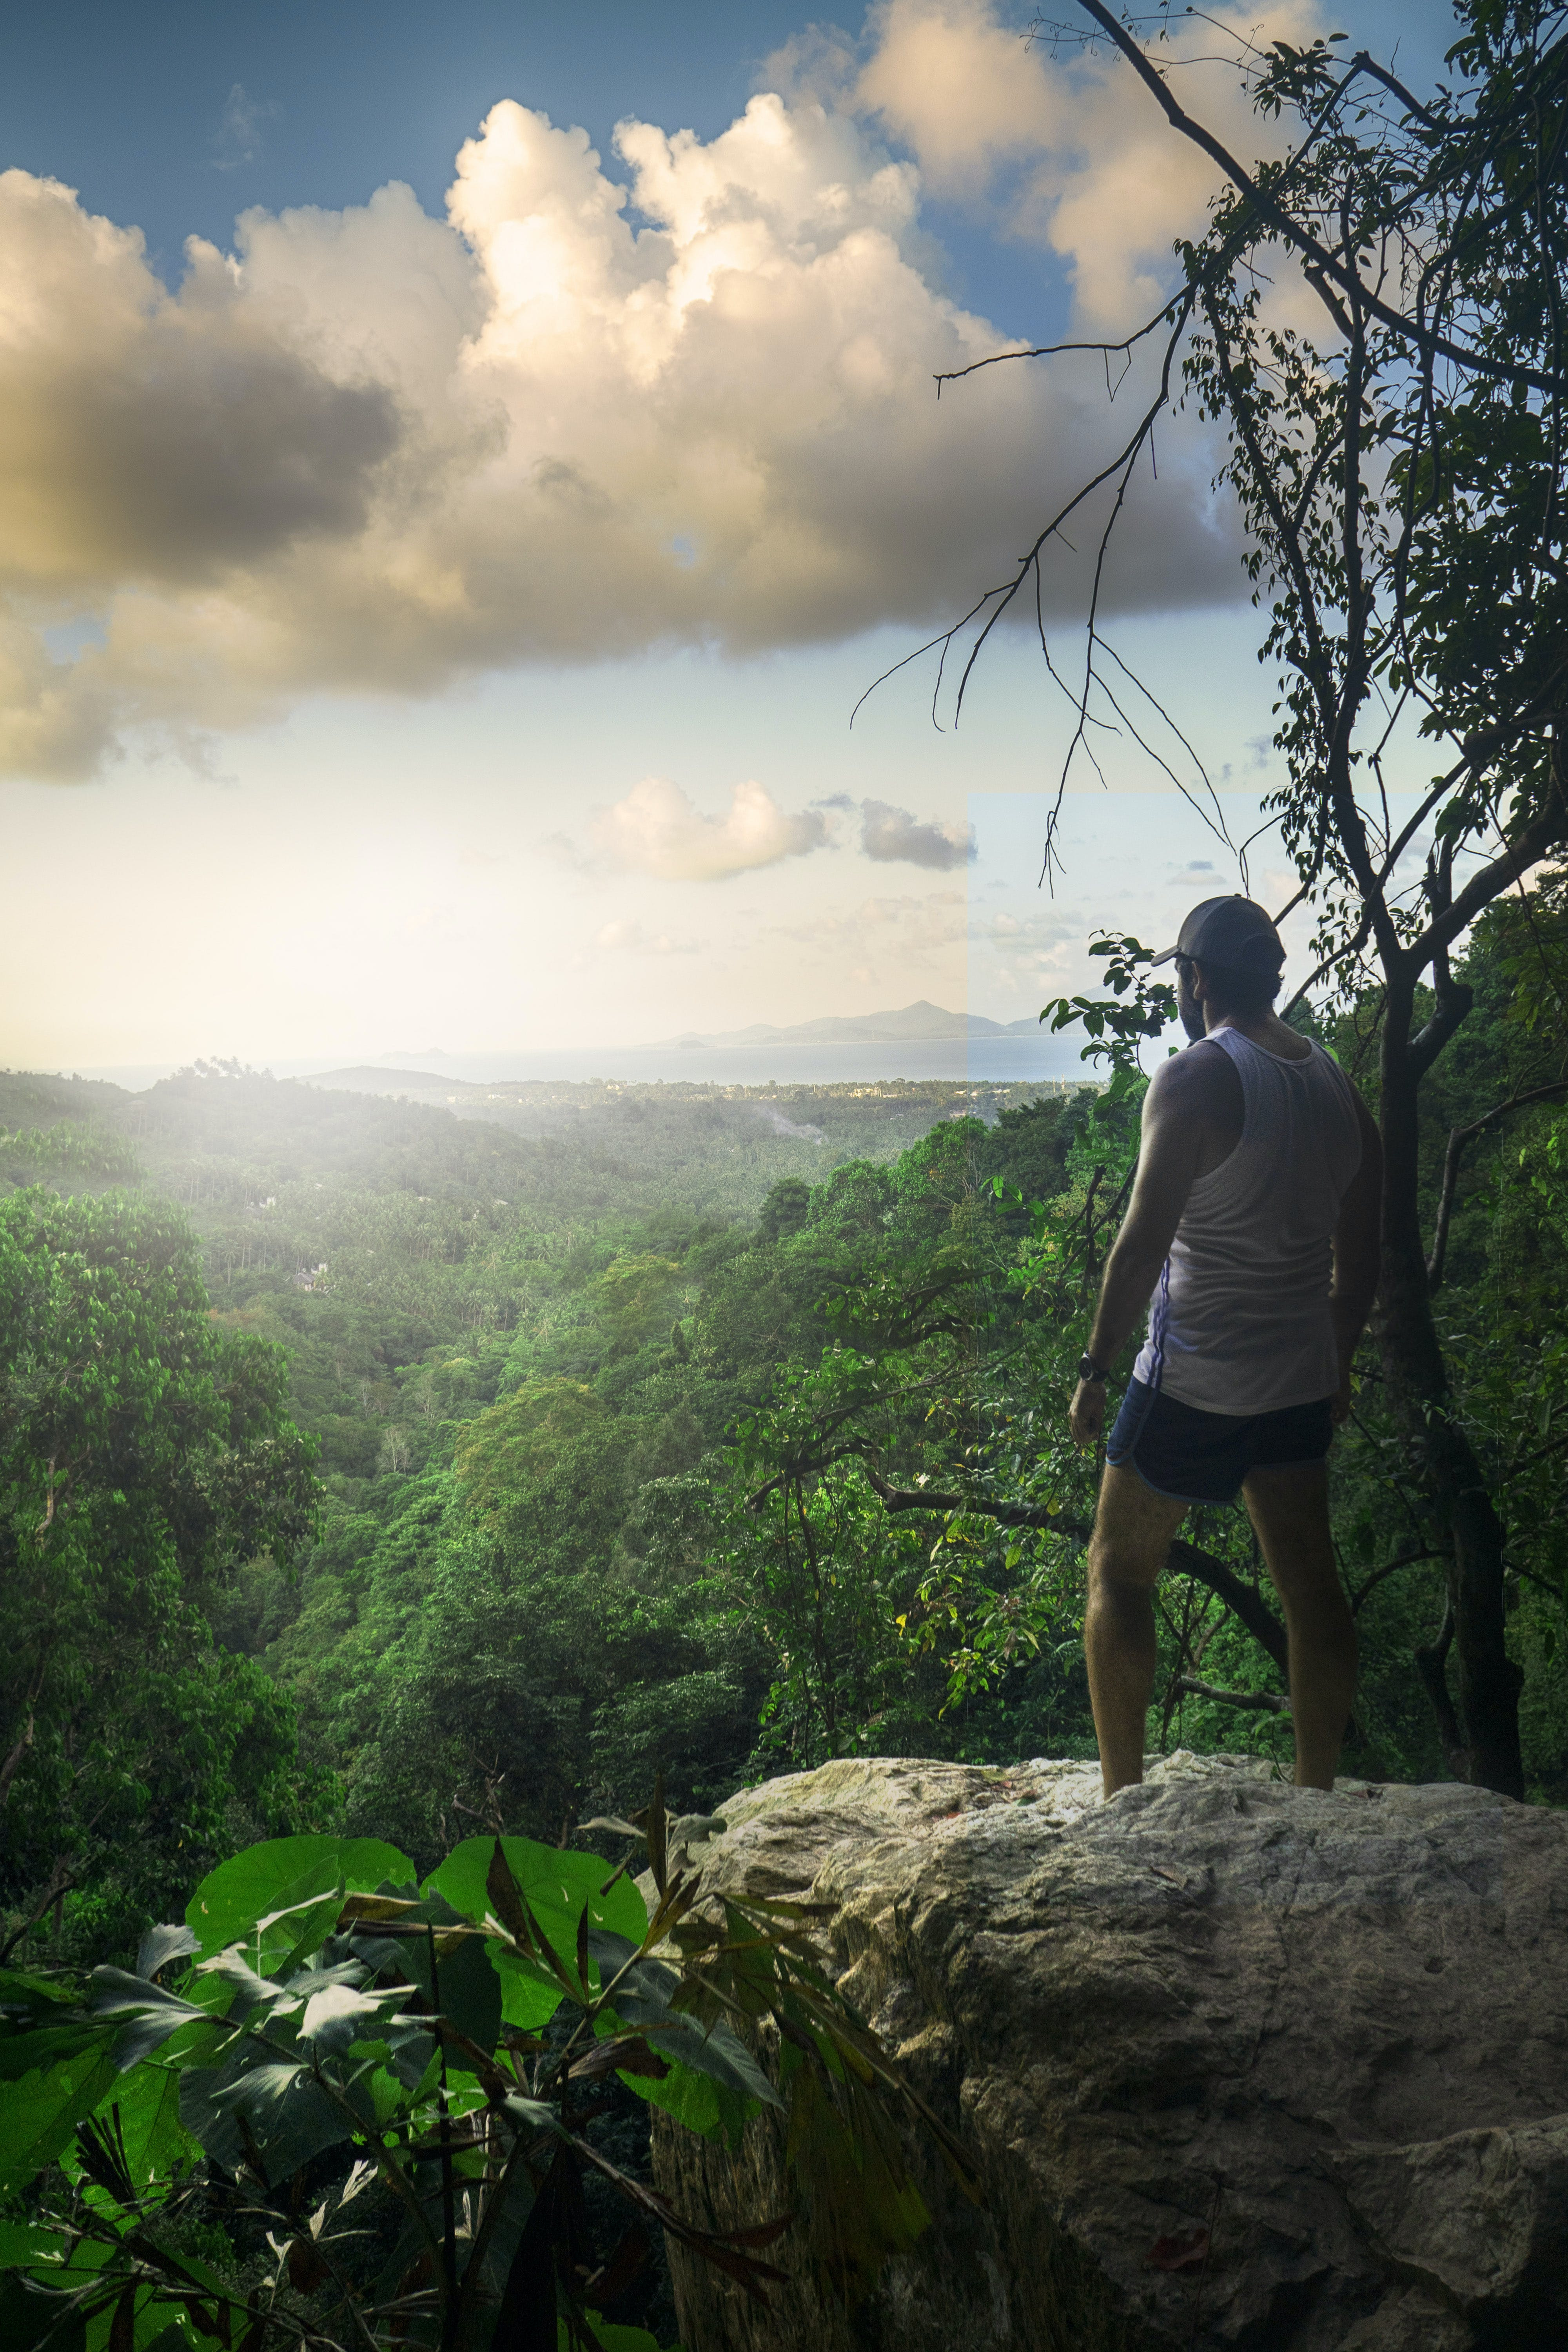 Man Standing On Cliff Surrounded By Trees